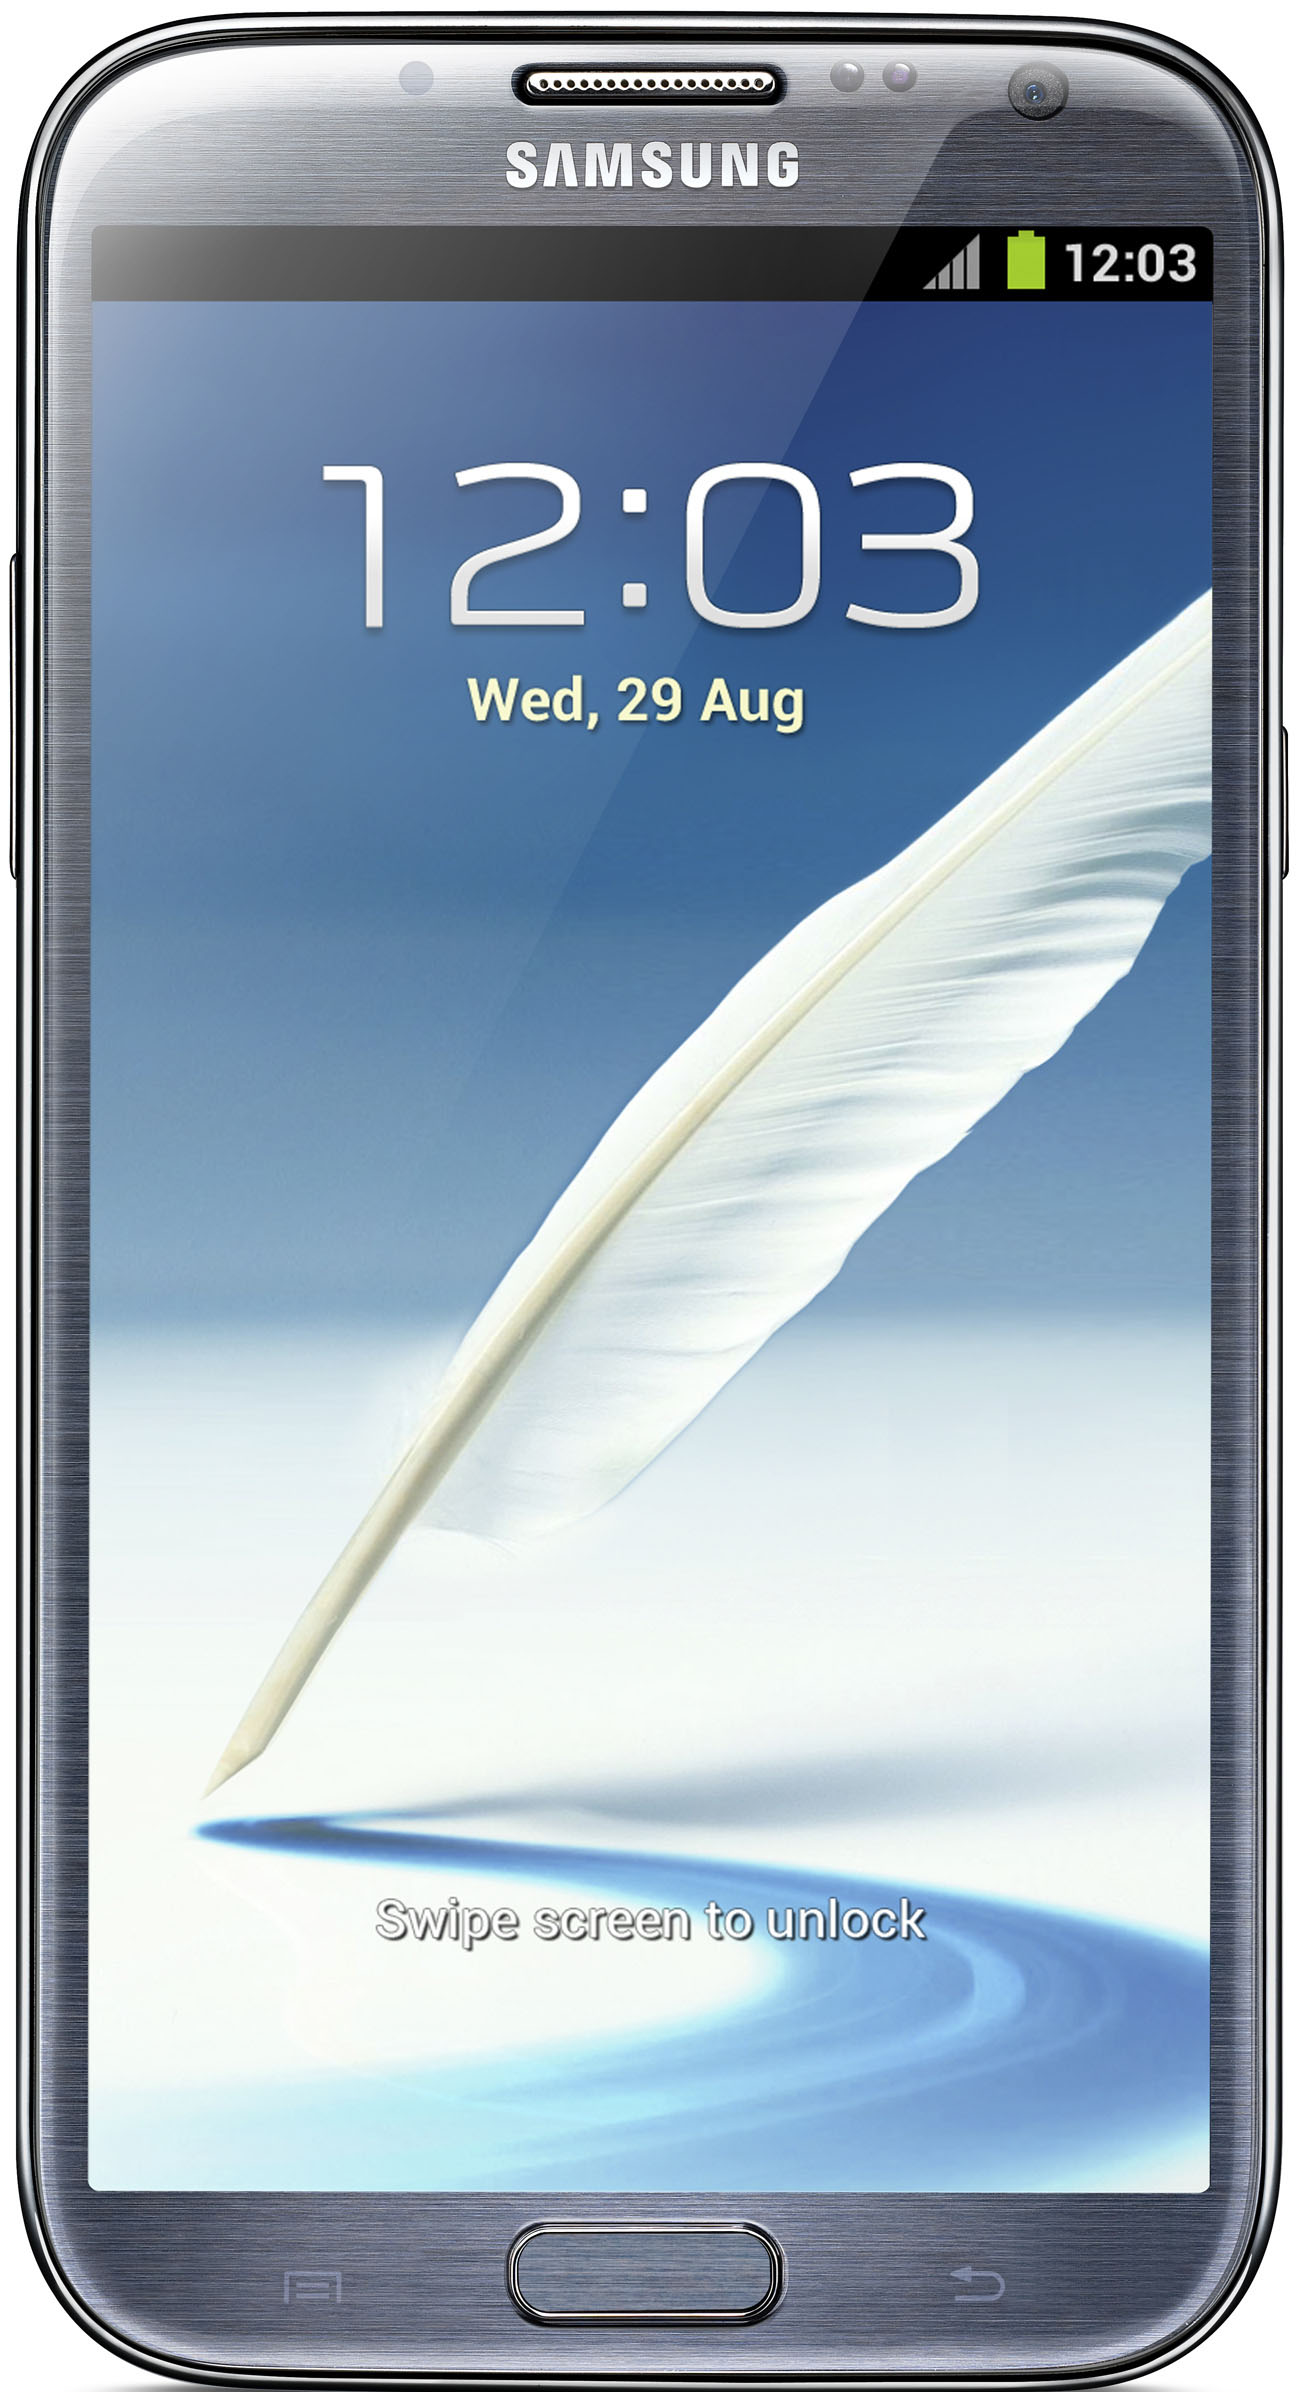 Samsung Galaxy Note 2 Specifications